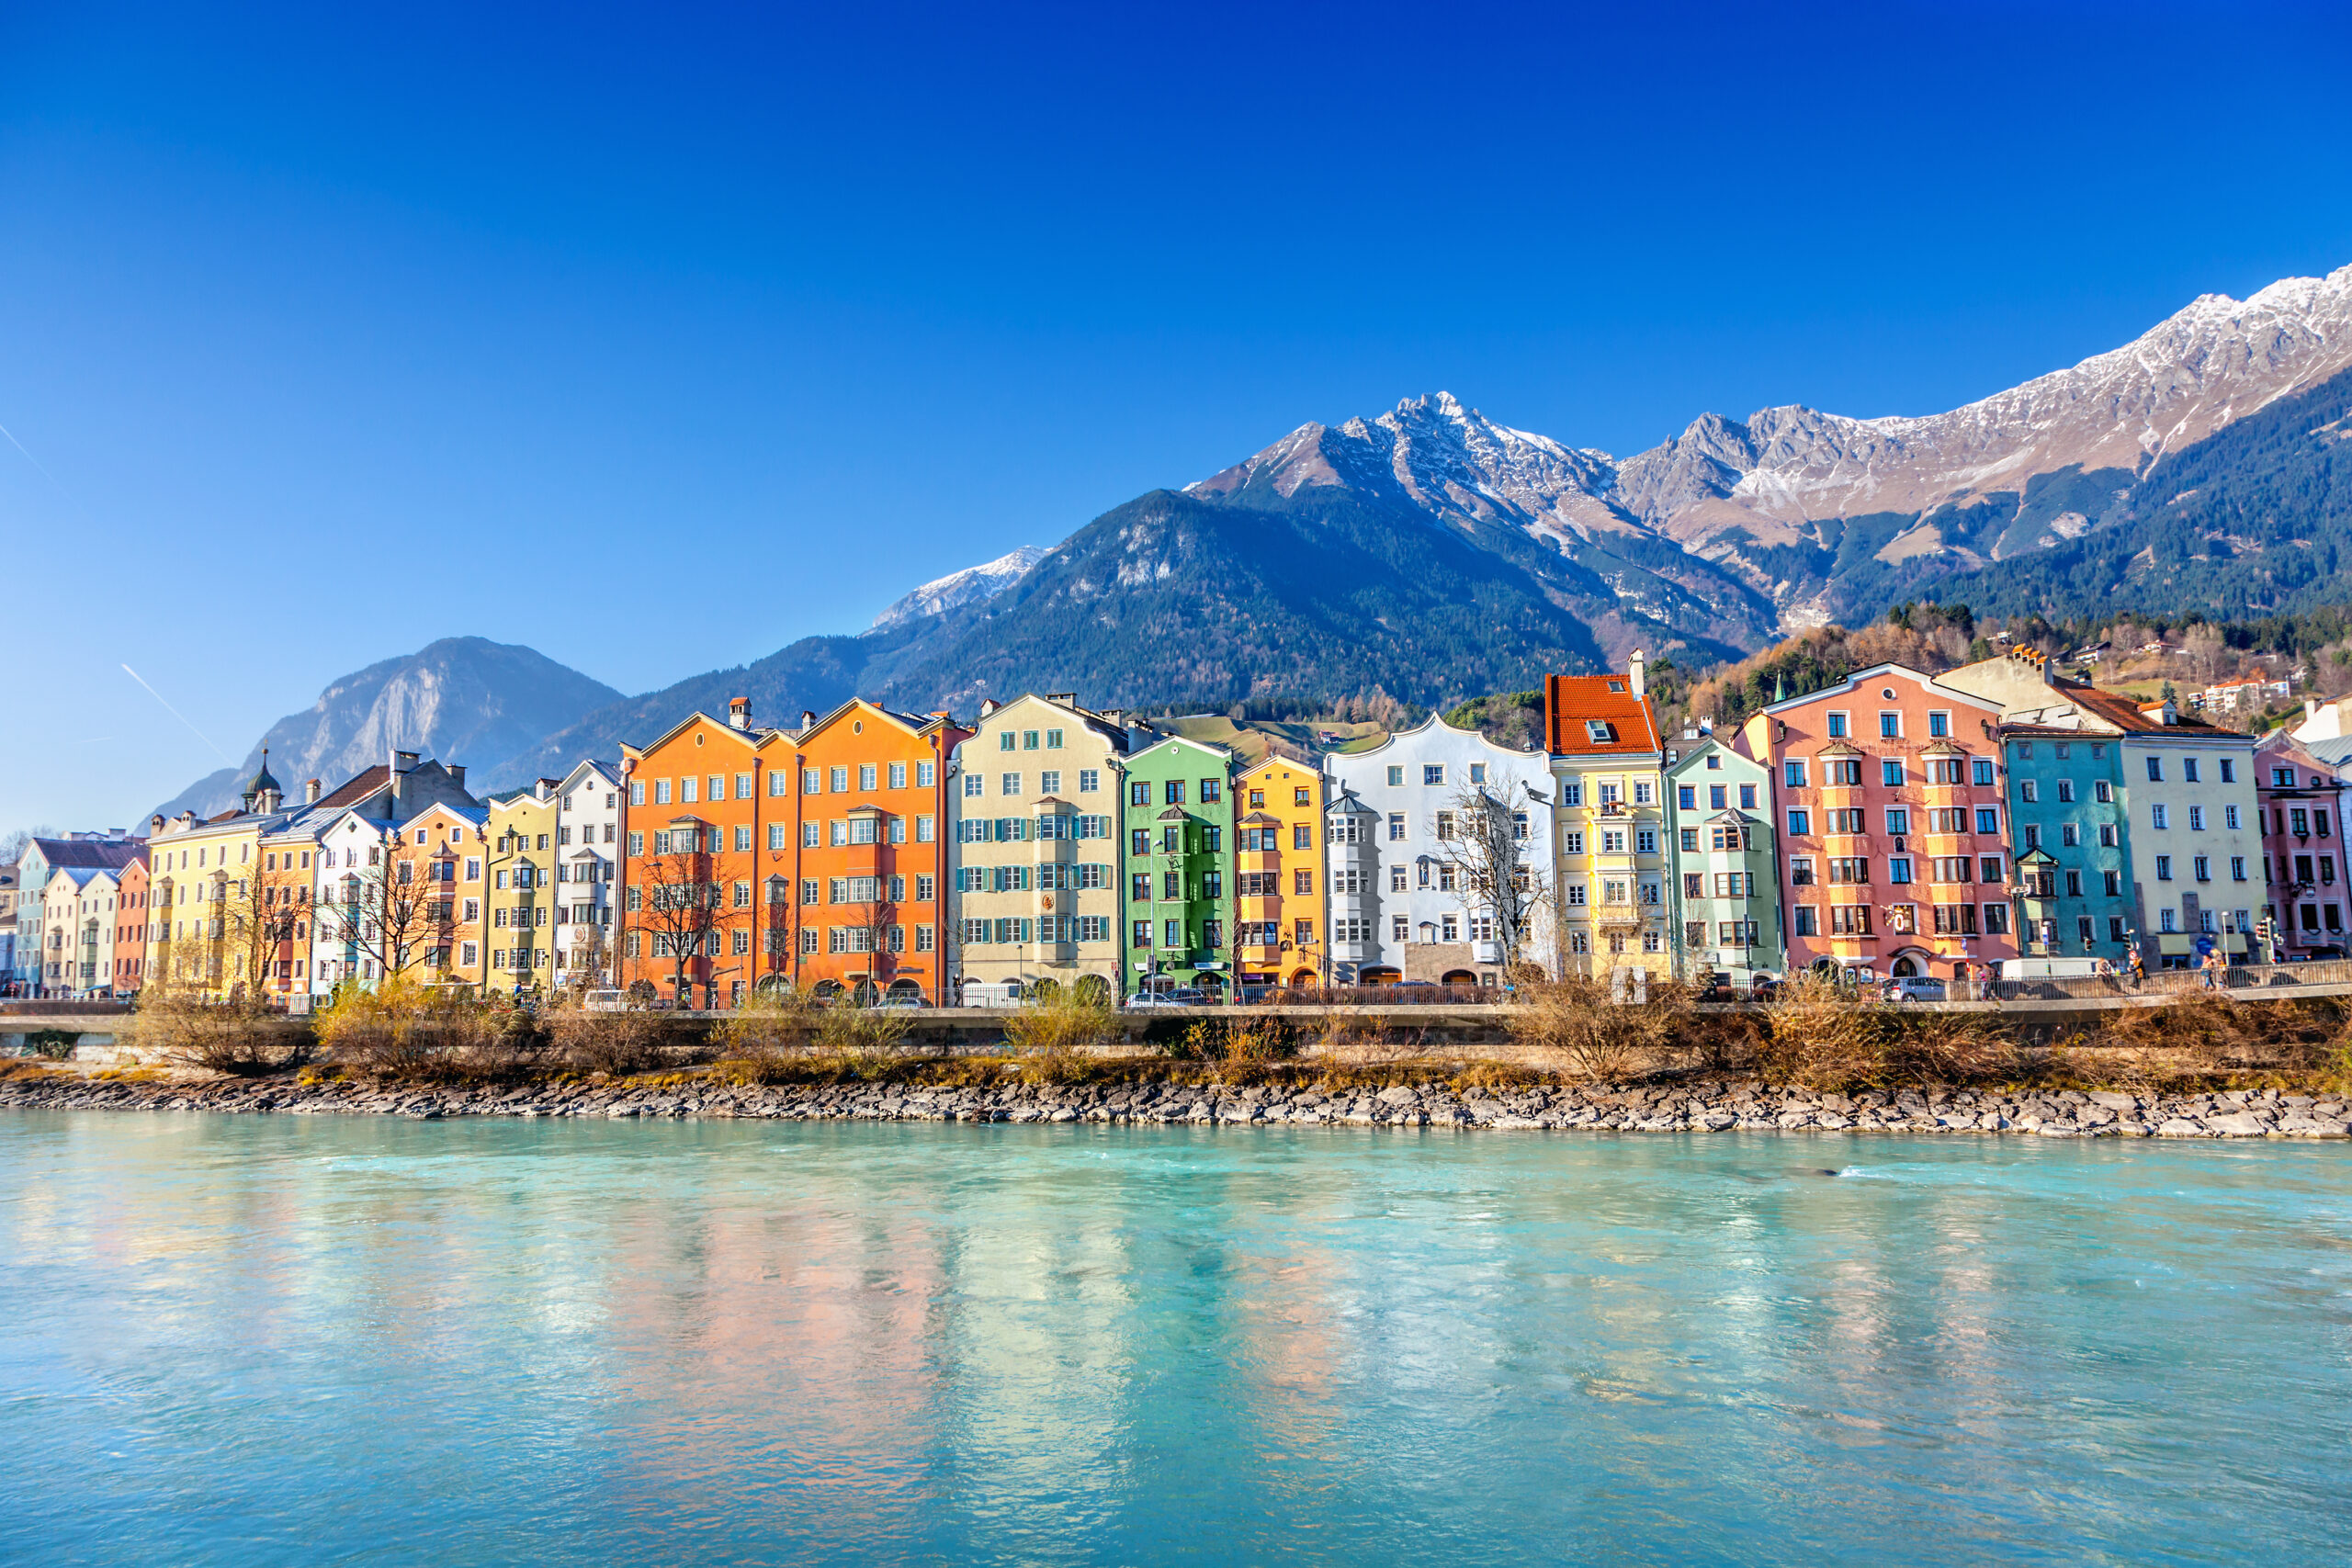 Photo of the small Austrian town of Innsbruck. An icy blue lake is seen in the foreground. Multi-level and multi-colored residences are featured in the middle with a slightly snowy mountain in the background.